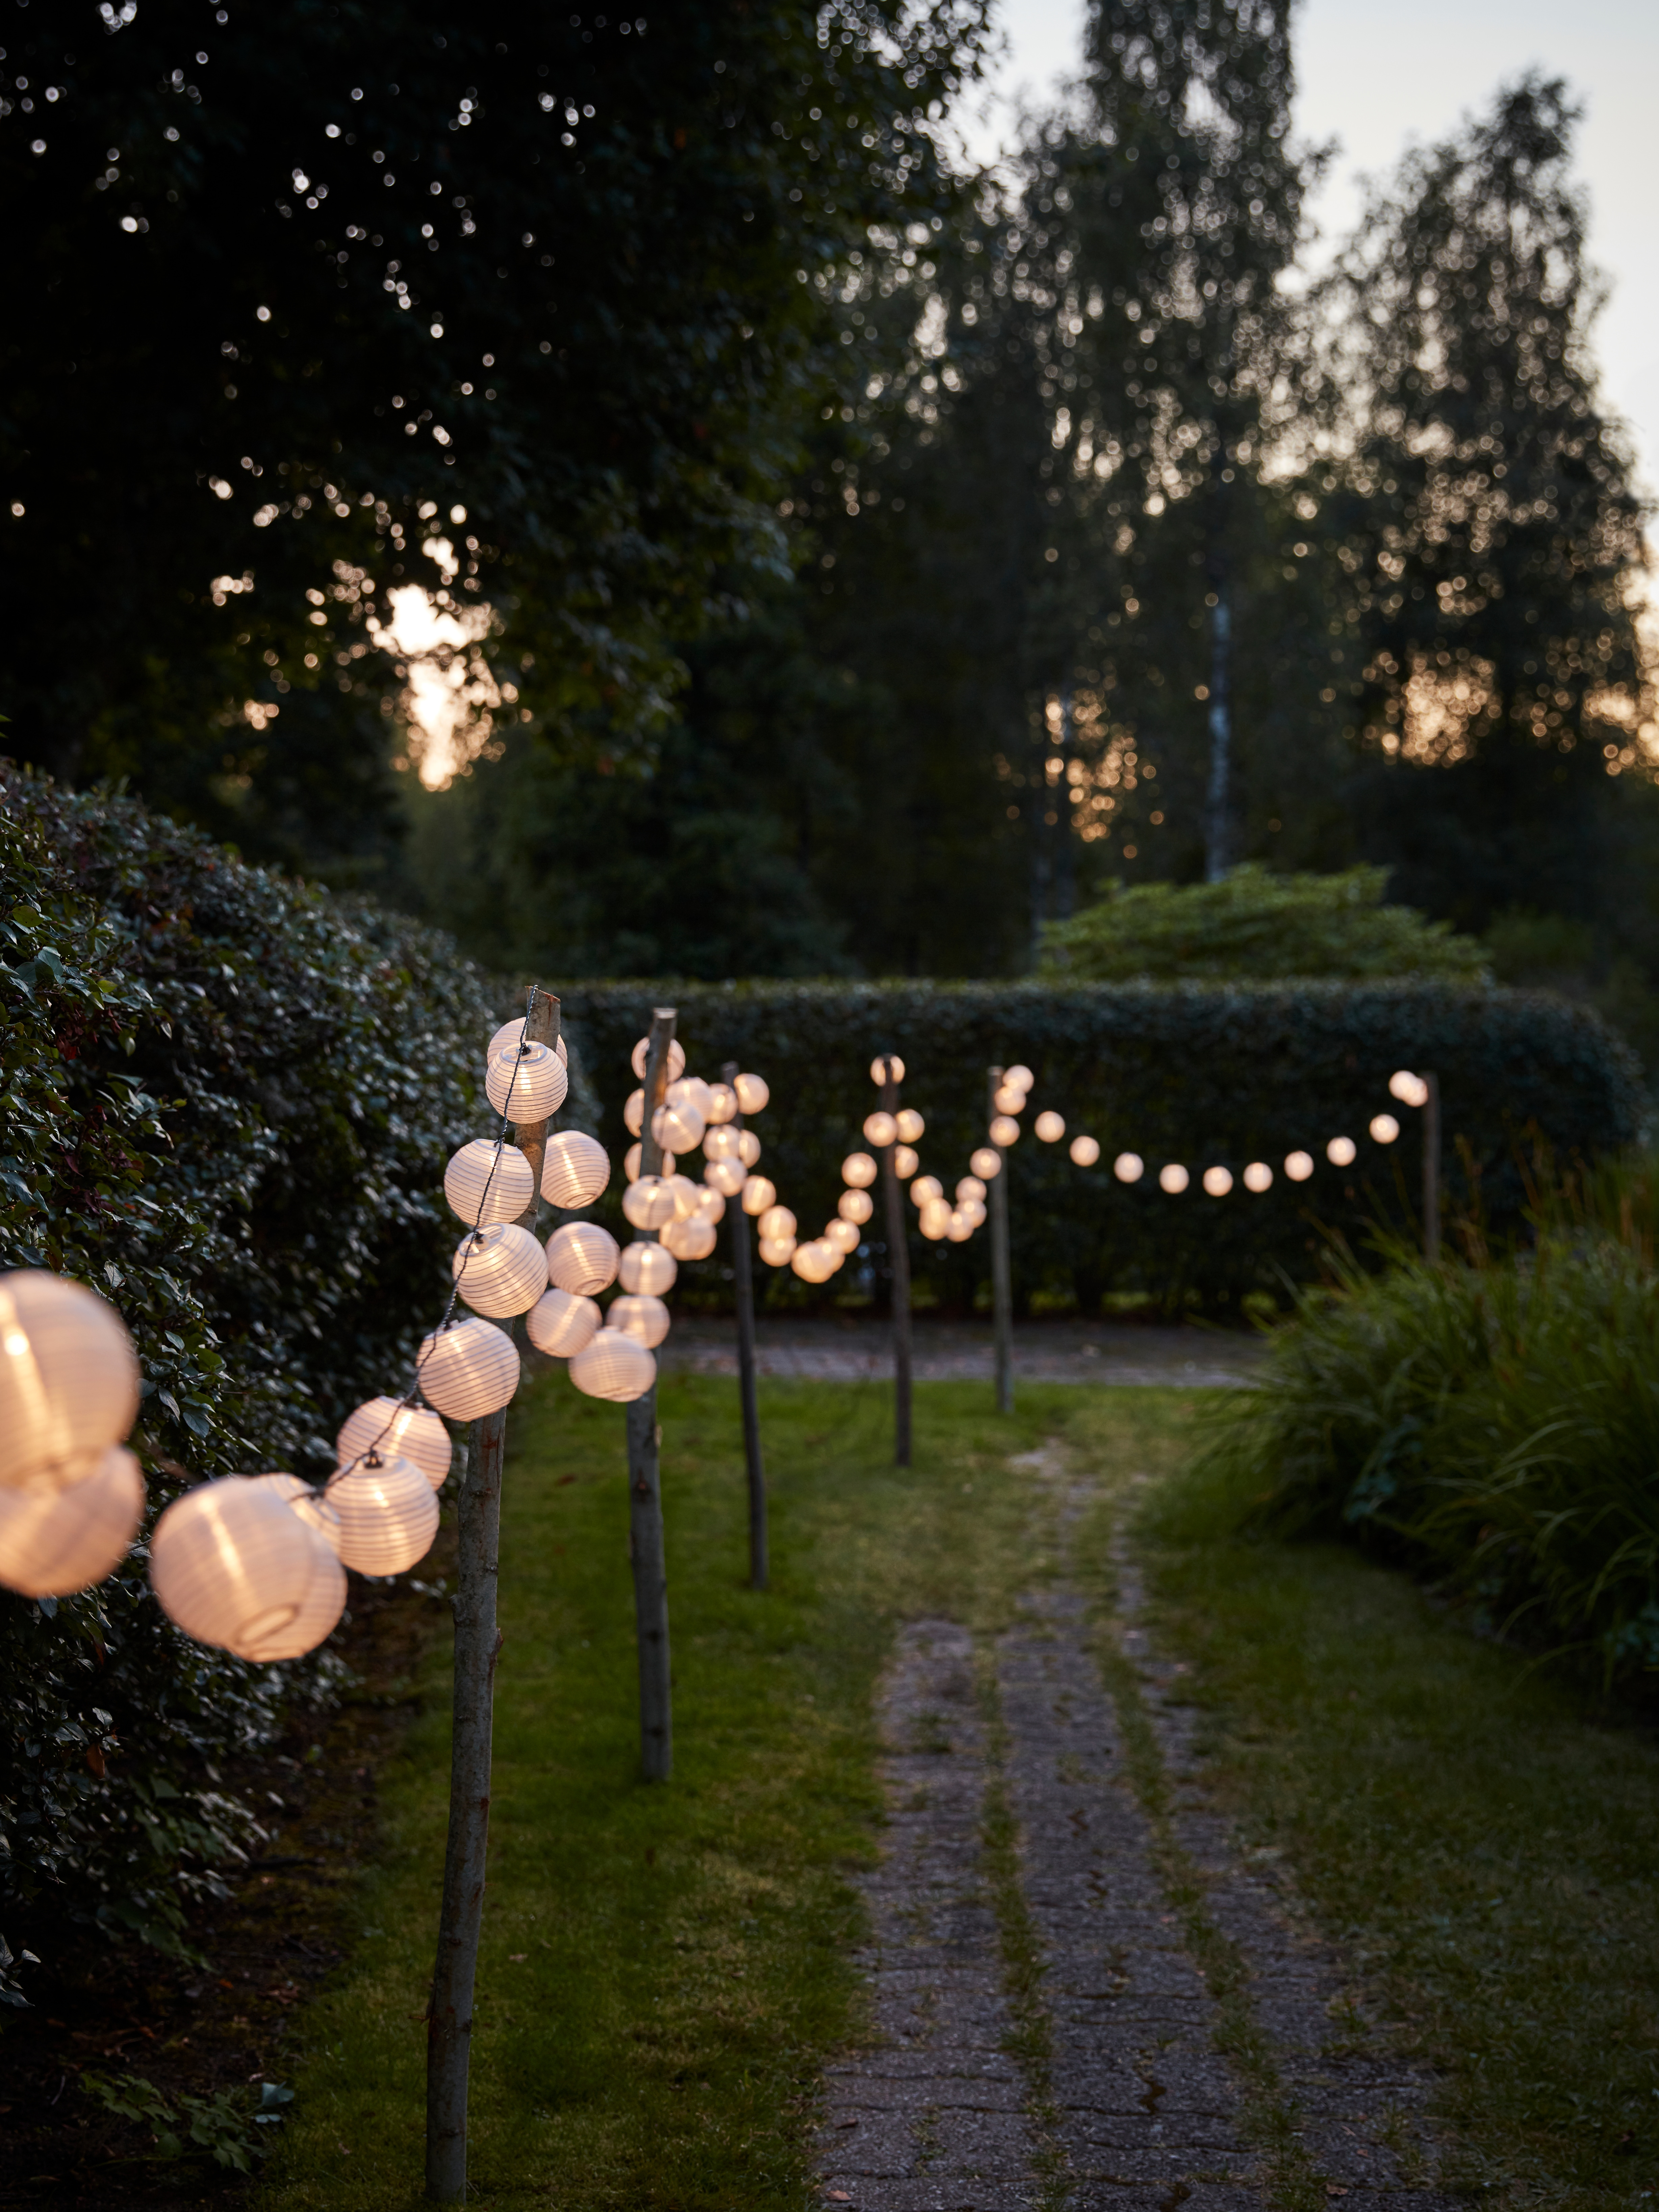 As the sun sets, SOLARVET LED solar-powered lighting chains hang on poles lining a path, brightening a garden.